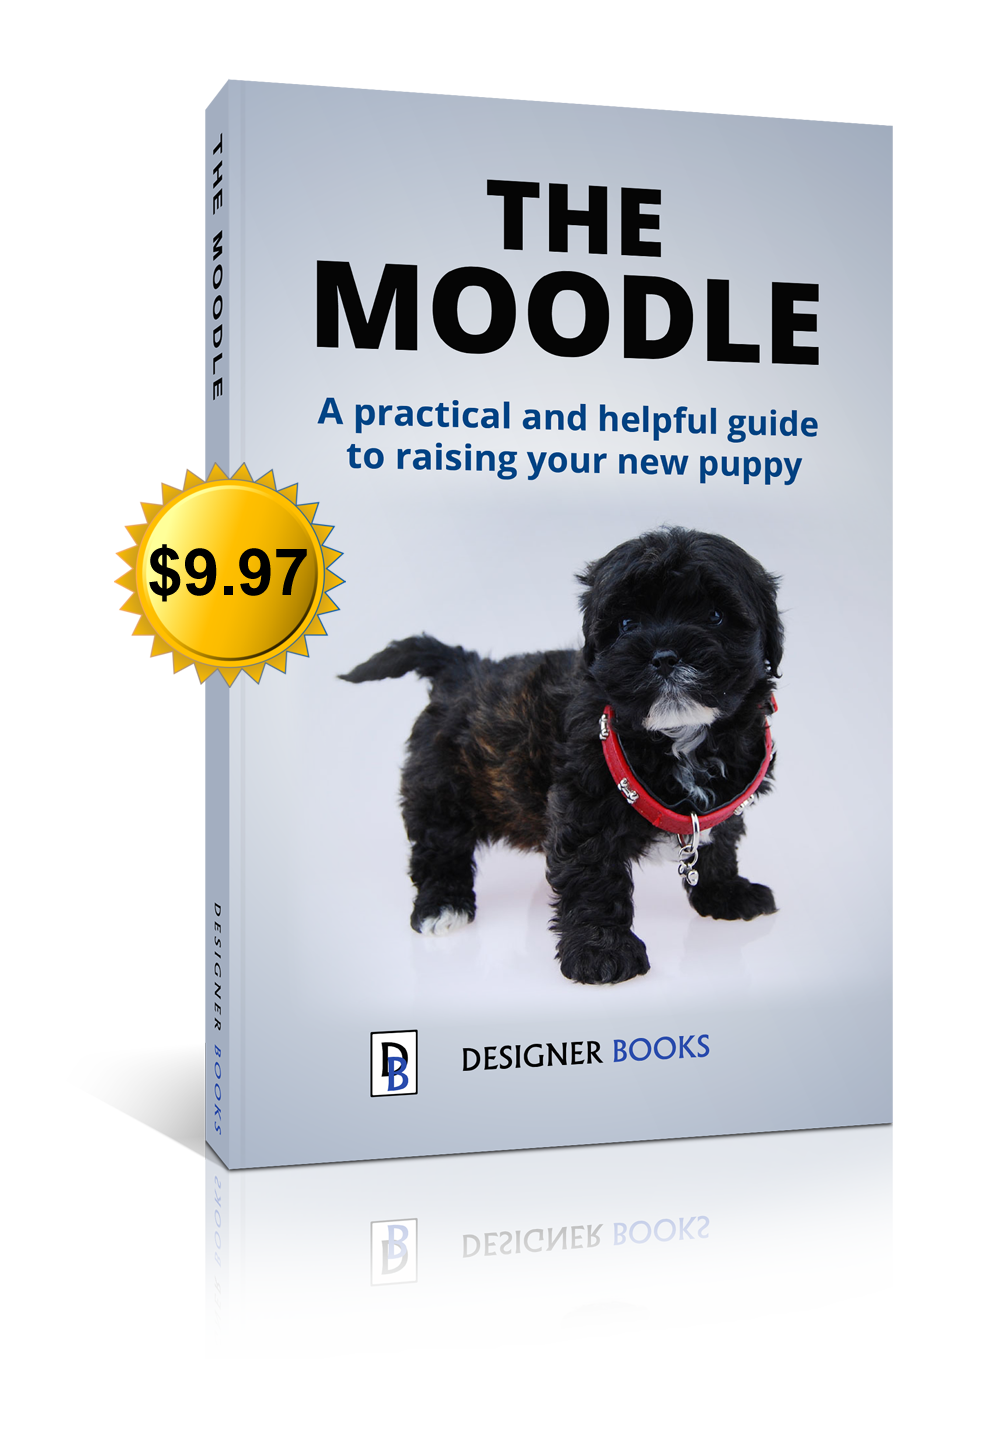 The Moodle book